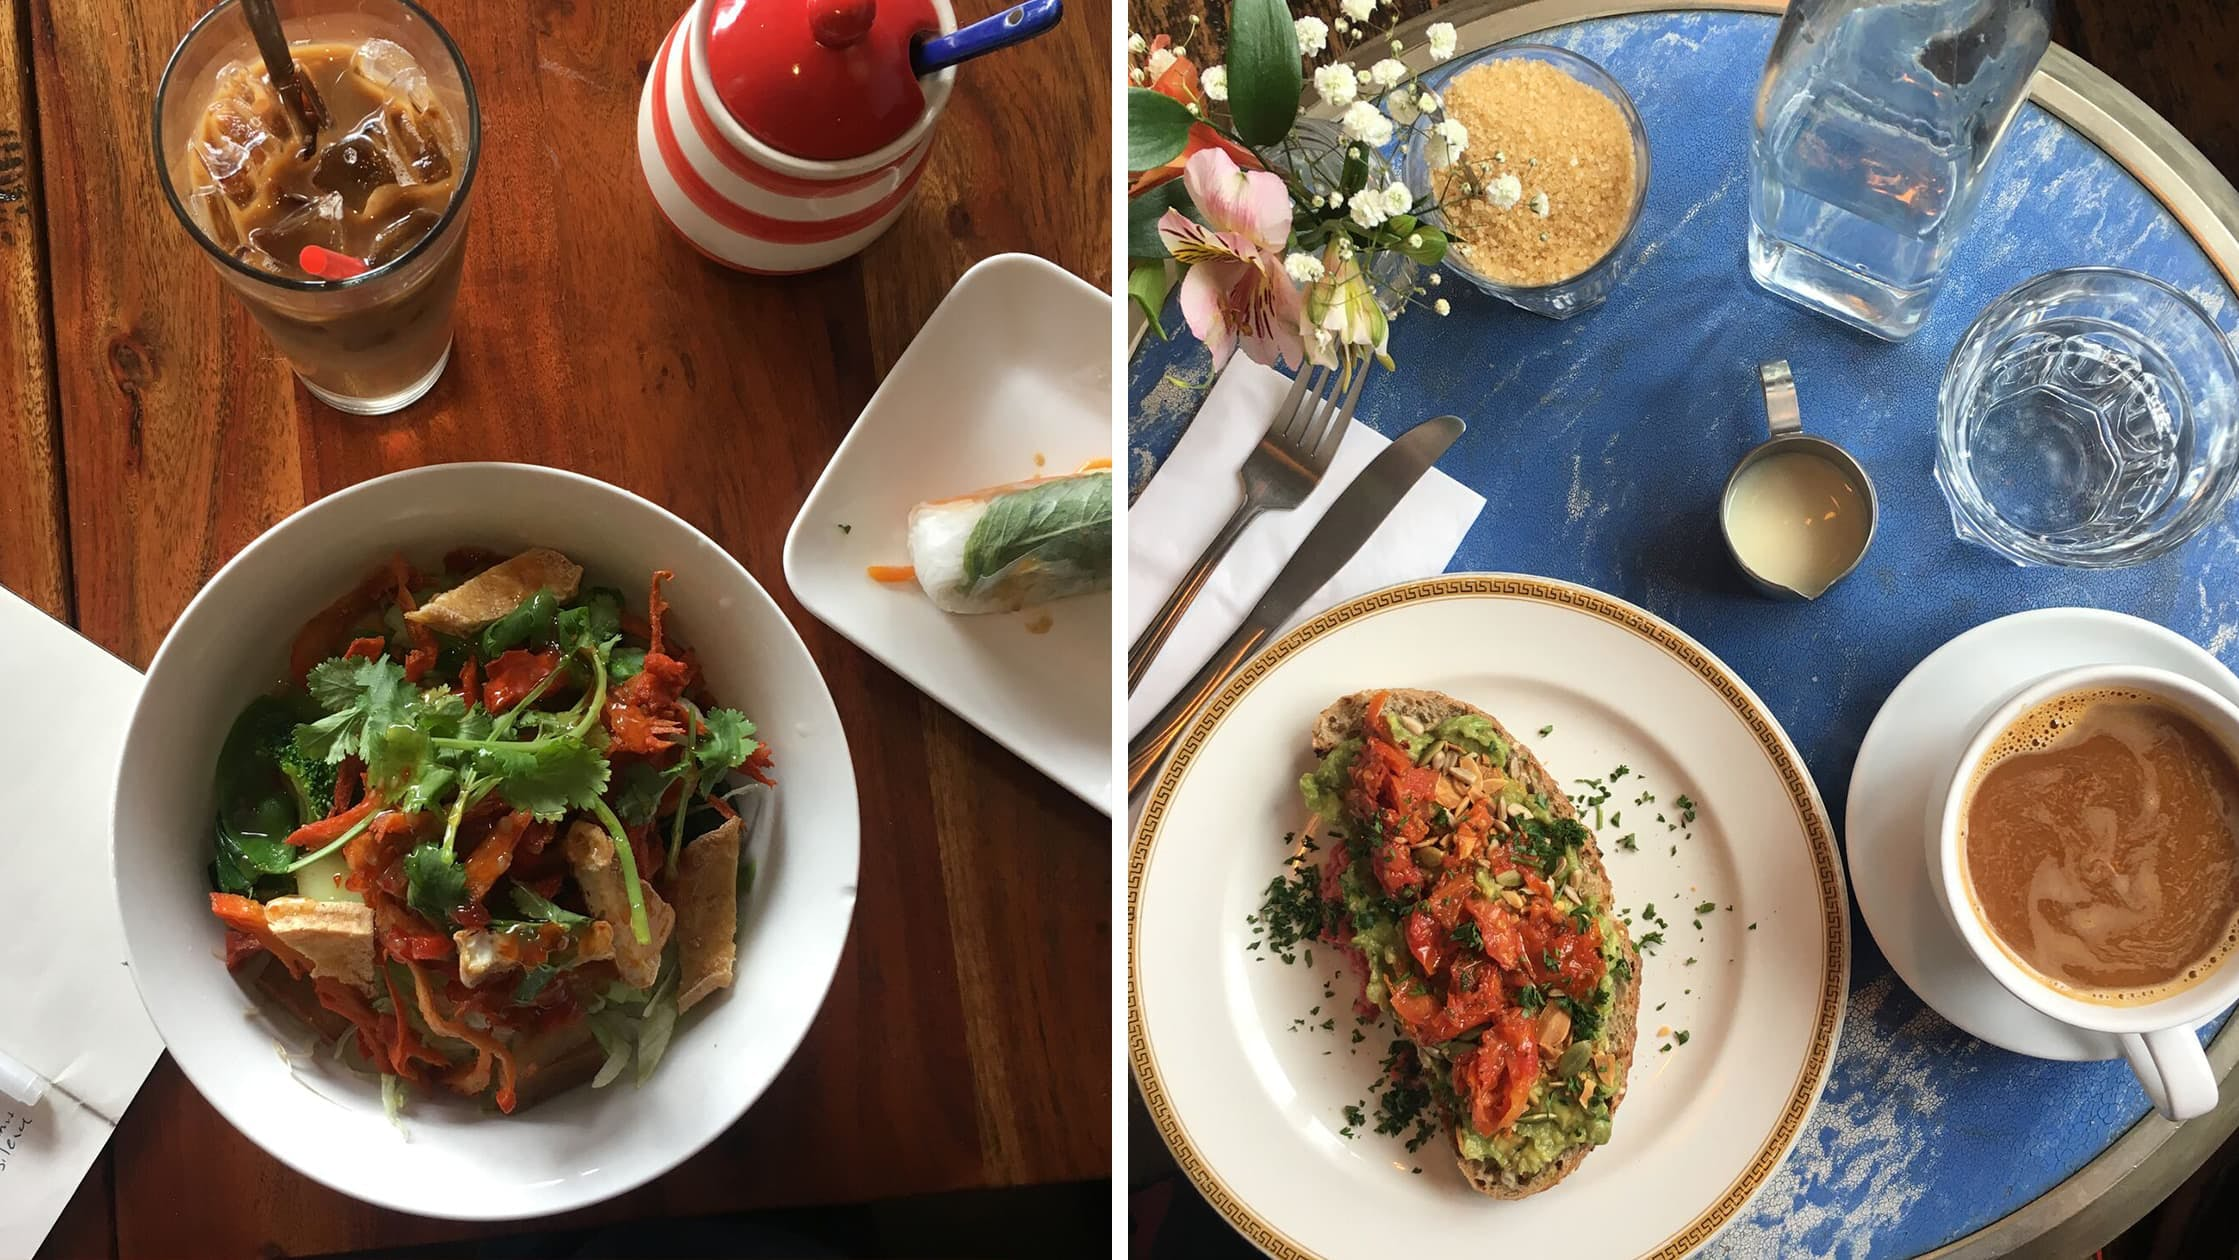 Left: Vietnamese food in Melbourne, Australia | Right: Avocado Toast in Oxford, England